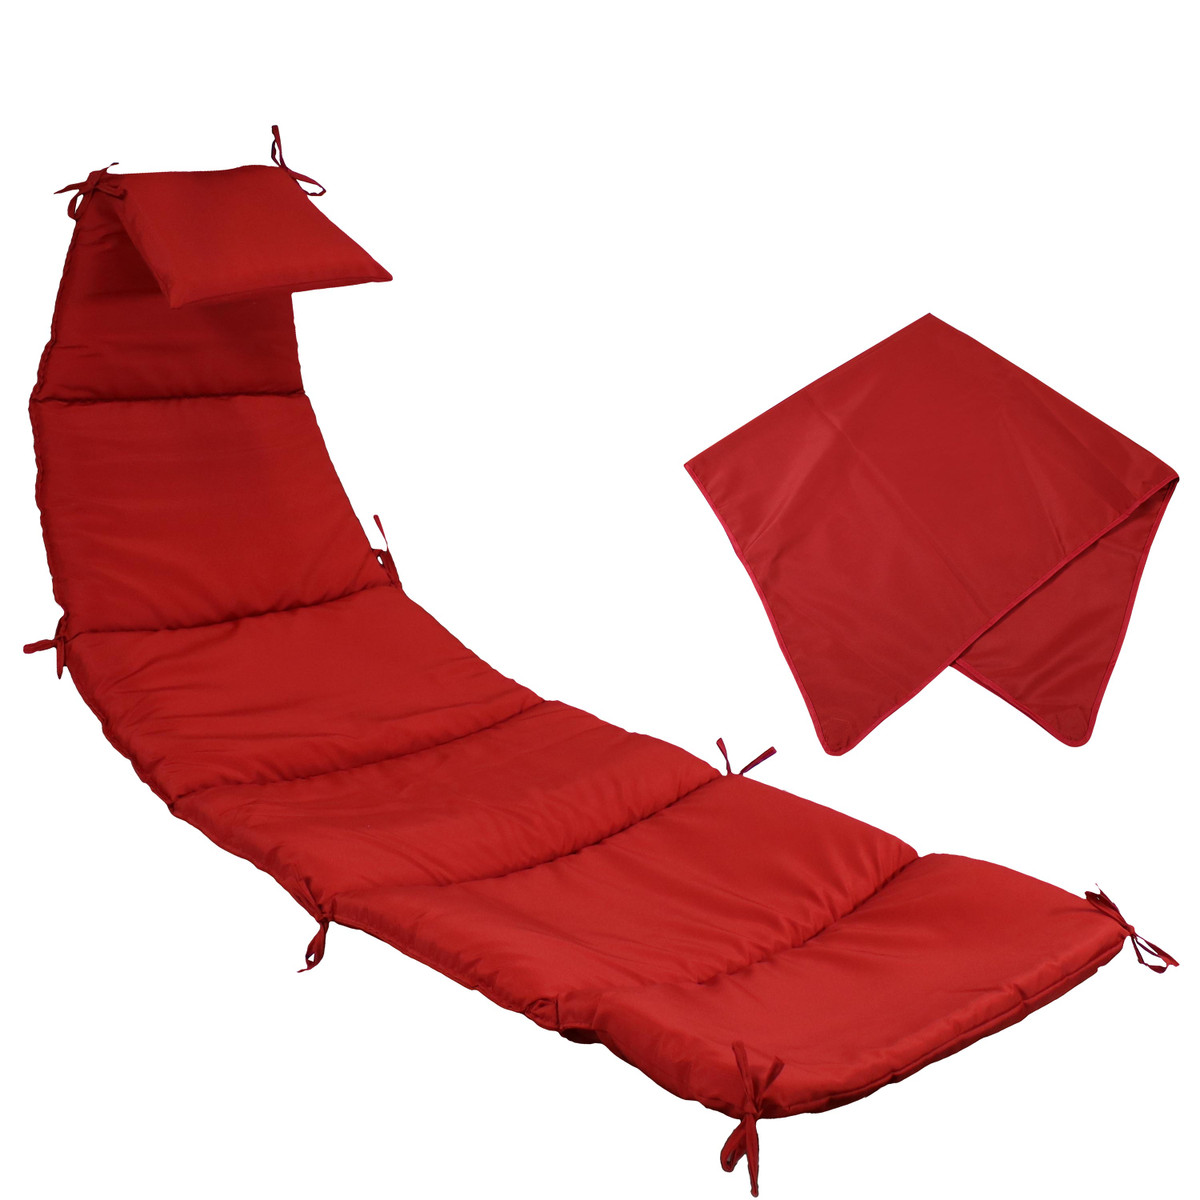 Sunnydaze Hanging Lounge Chair Replacement Cushion And Umbrella Multiple Colors Available